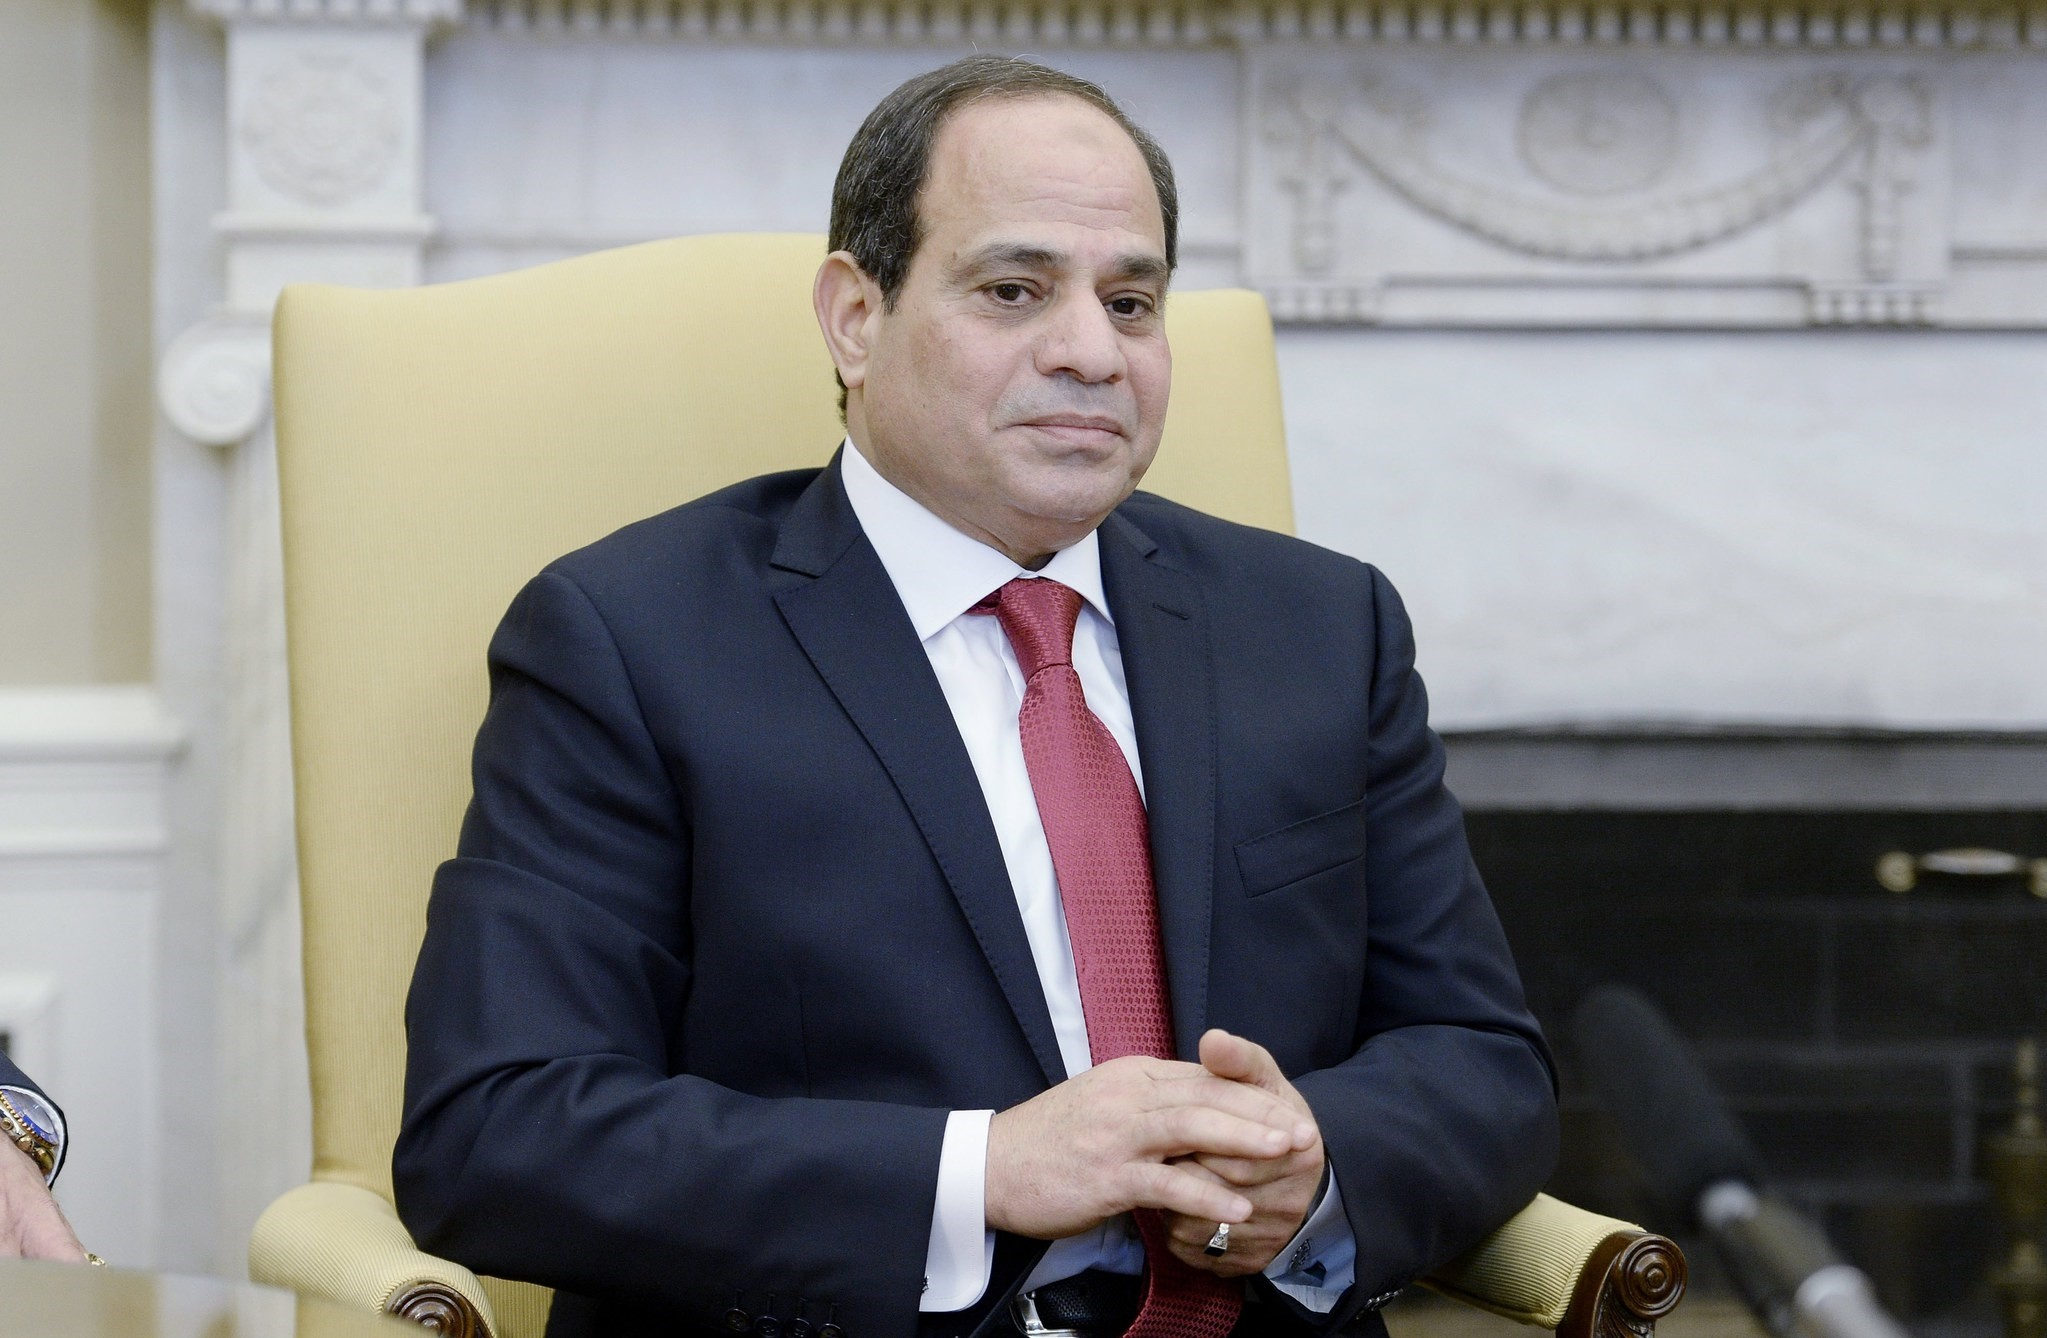 President Abdel Fattah Al Sisi of Egypt looks on in the Oval Office of White House during a meeting with US President Donald J. Trump in Washington. (EPA Photo)